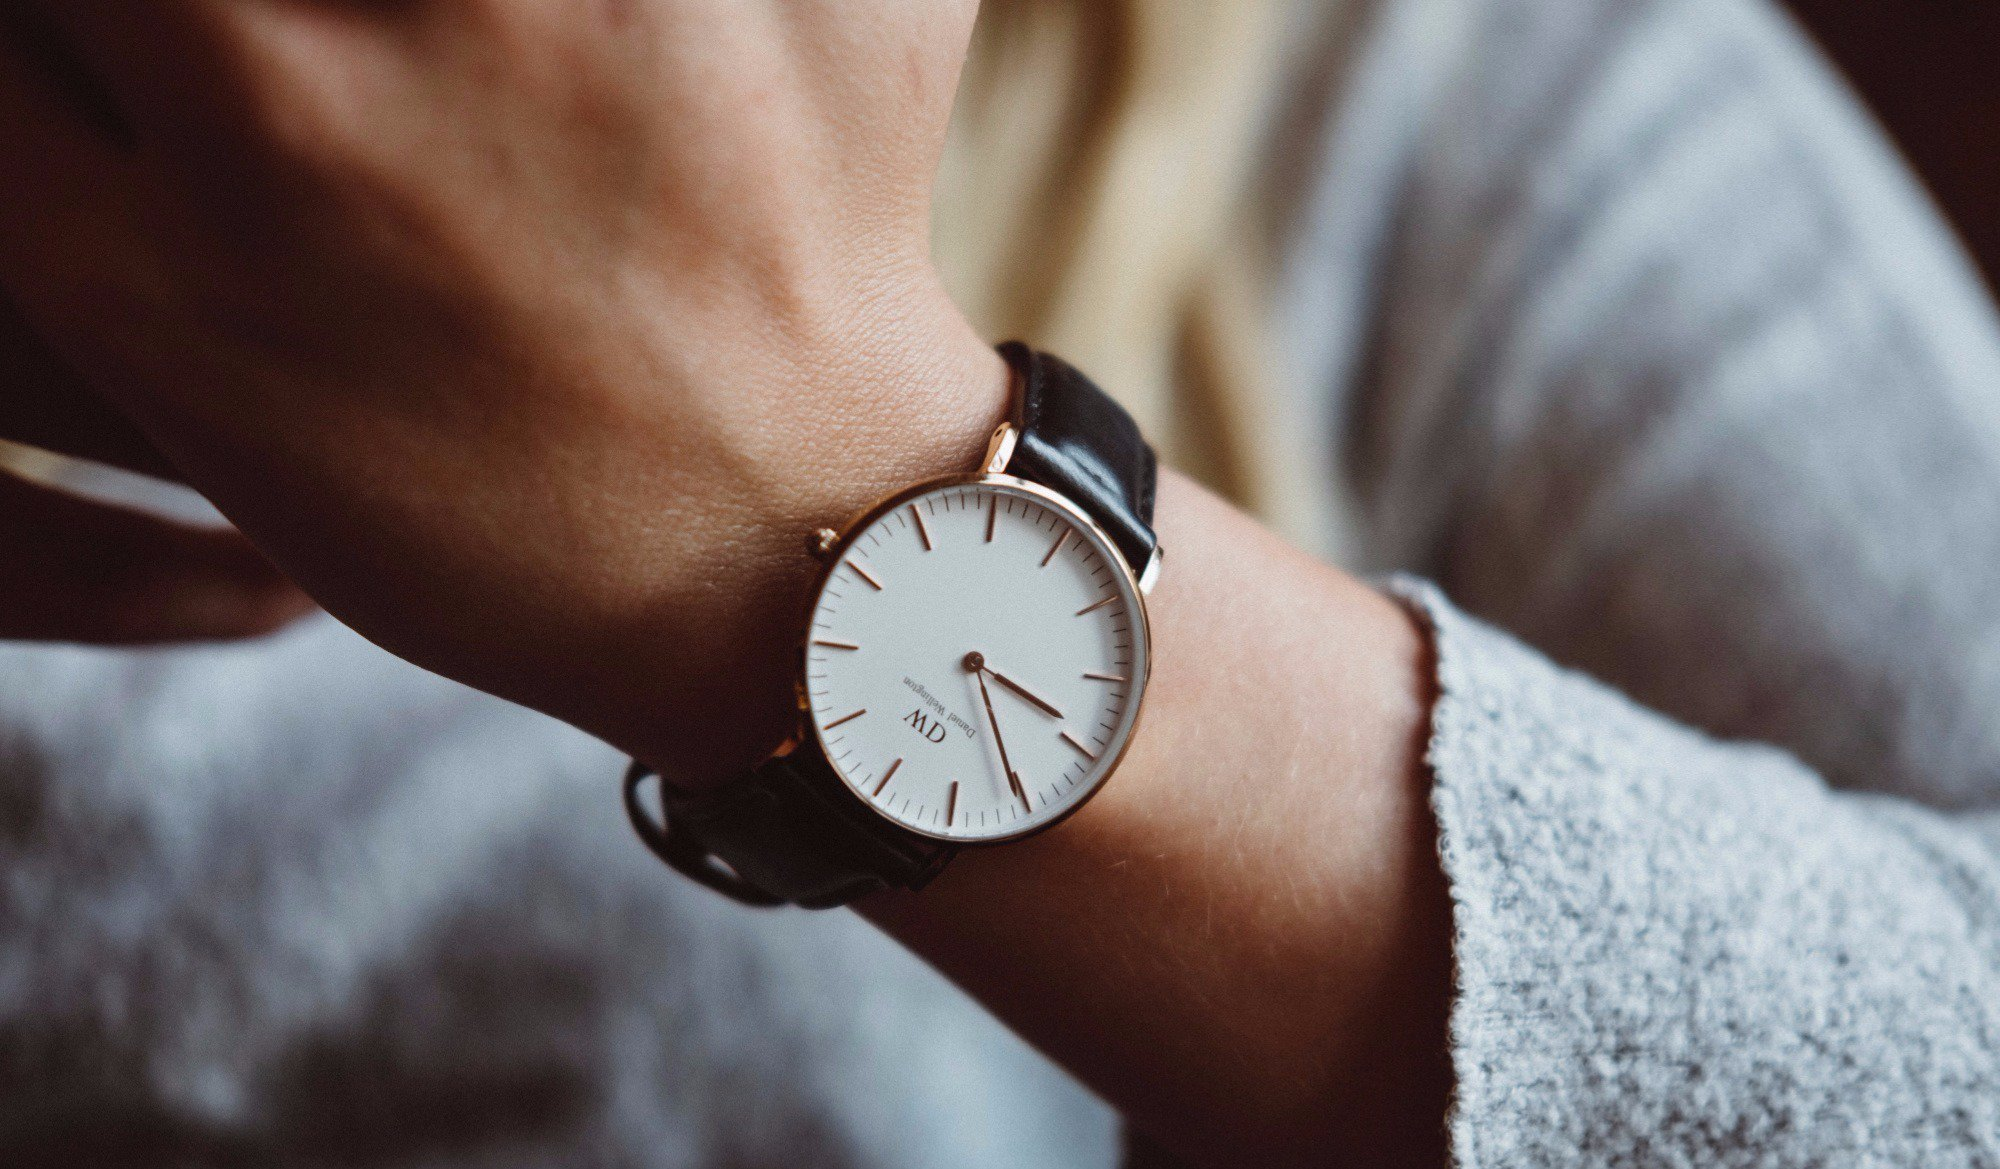 The sentimental value of a cheap watch.